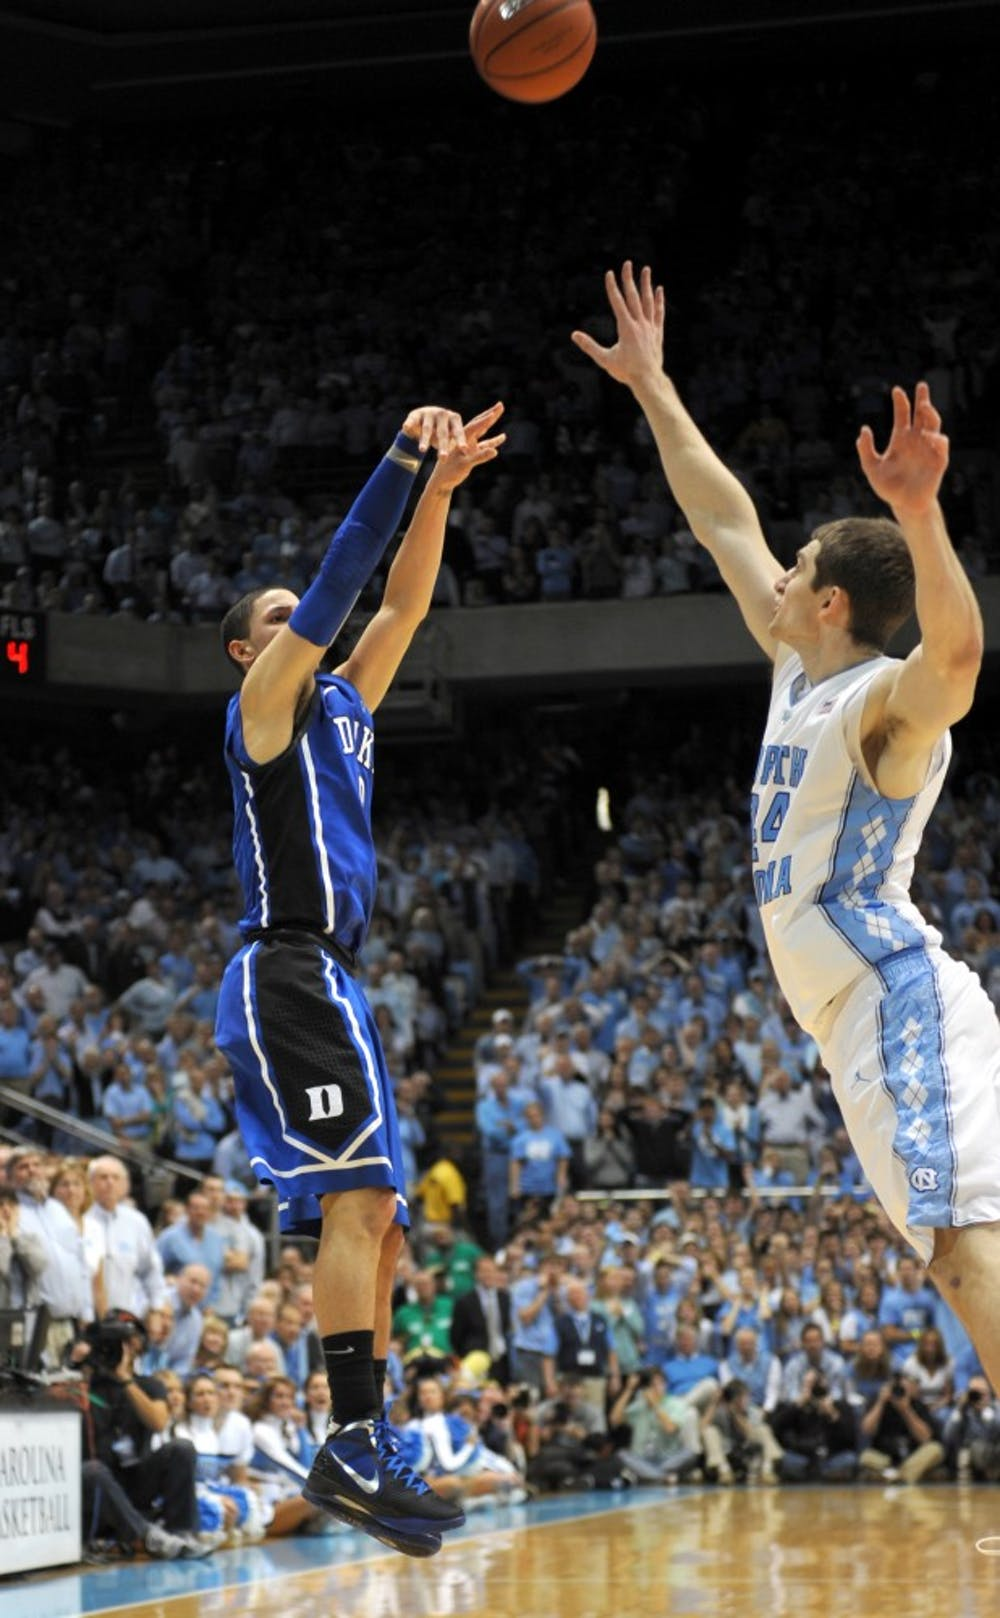 Duke's loss to Lehigh marred the end of the 2011-12 campaign, but Austin Rivers' buzzer-beating game-winner against North Carolina remains that season's lasting image.